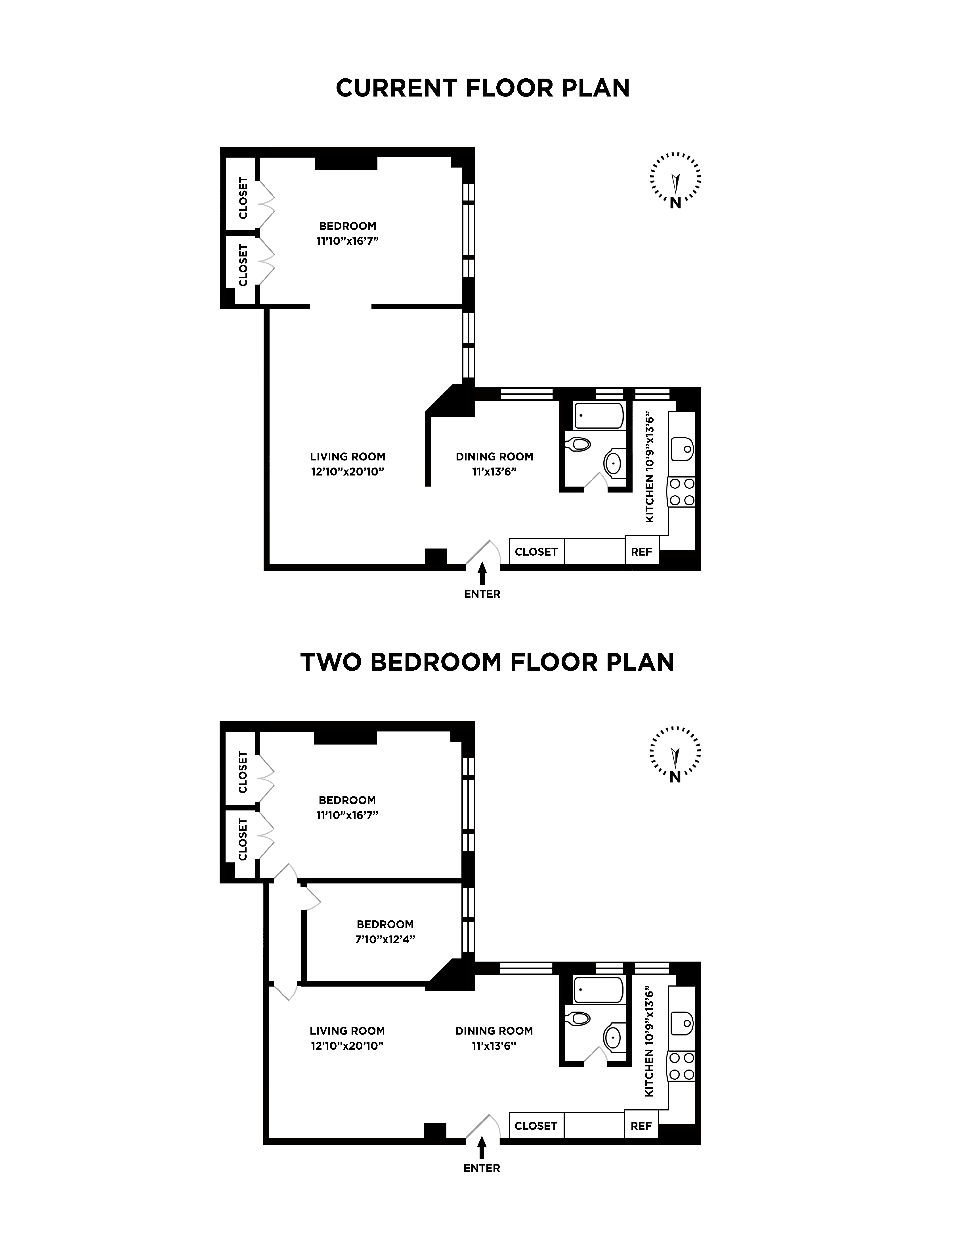 Current and Alternative Floorplan